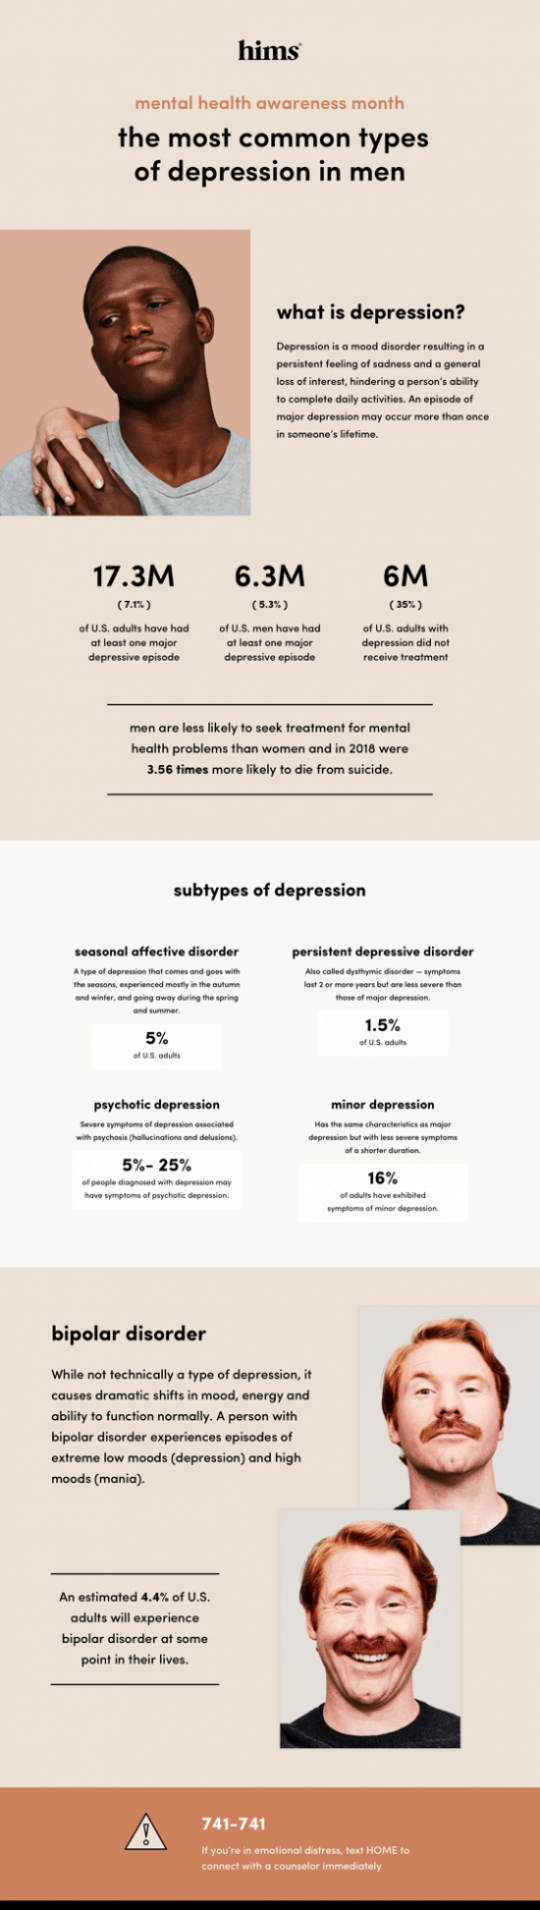 understanding the most common types of depression in men 1